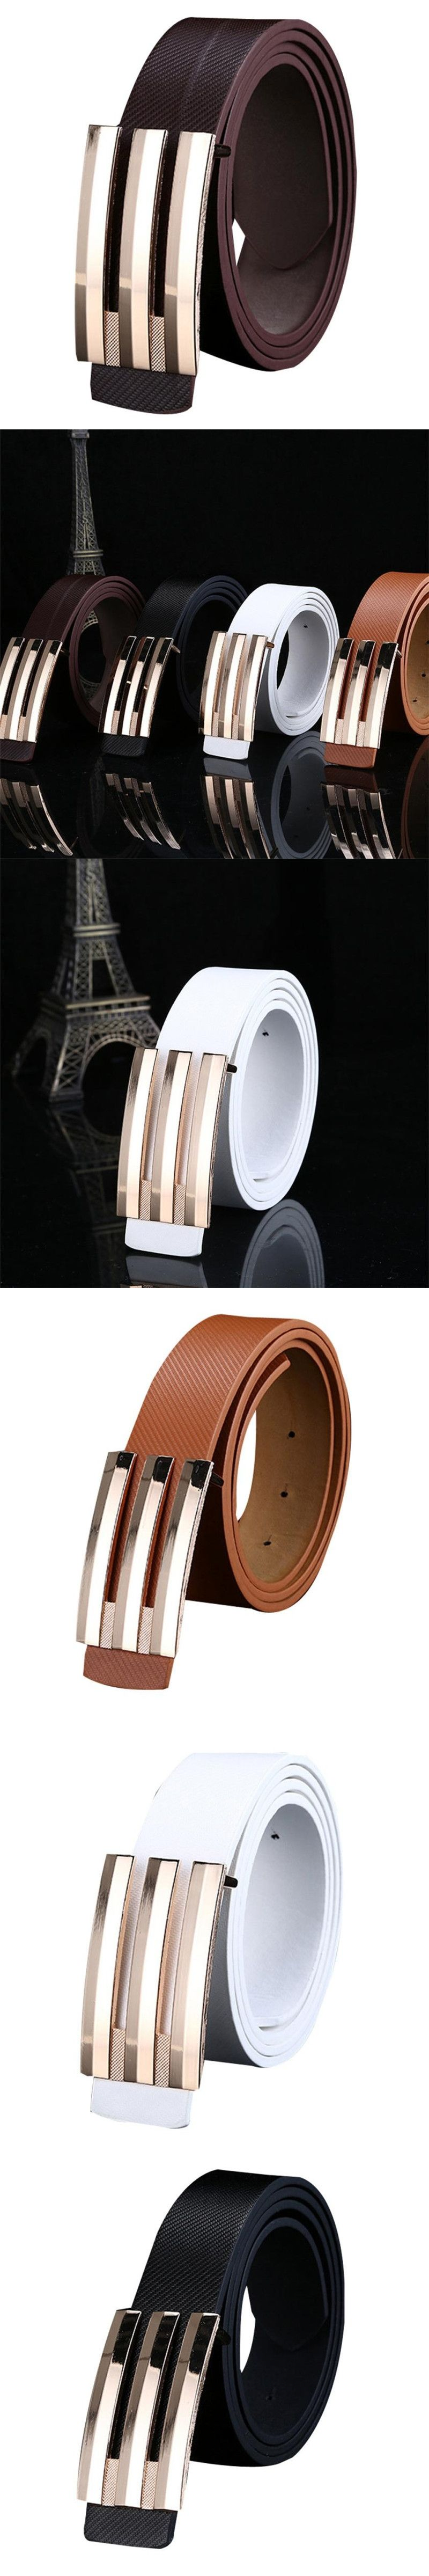 Hot Sale Especially Men Women Automatic Buckle Leather Waist Strap Belts  Buckle Belt ceinture homme cinturon 714eaa71a0d